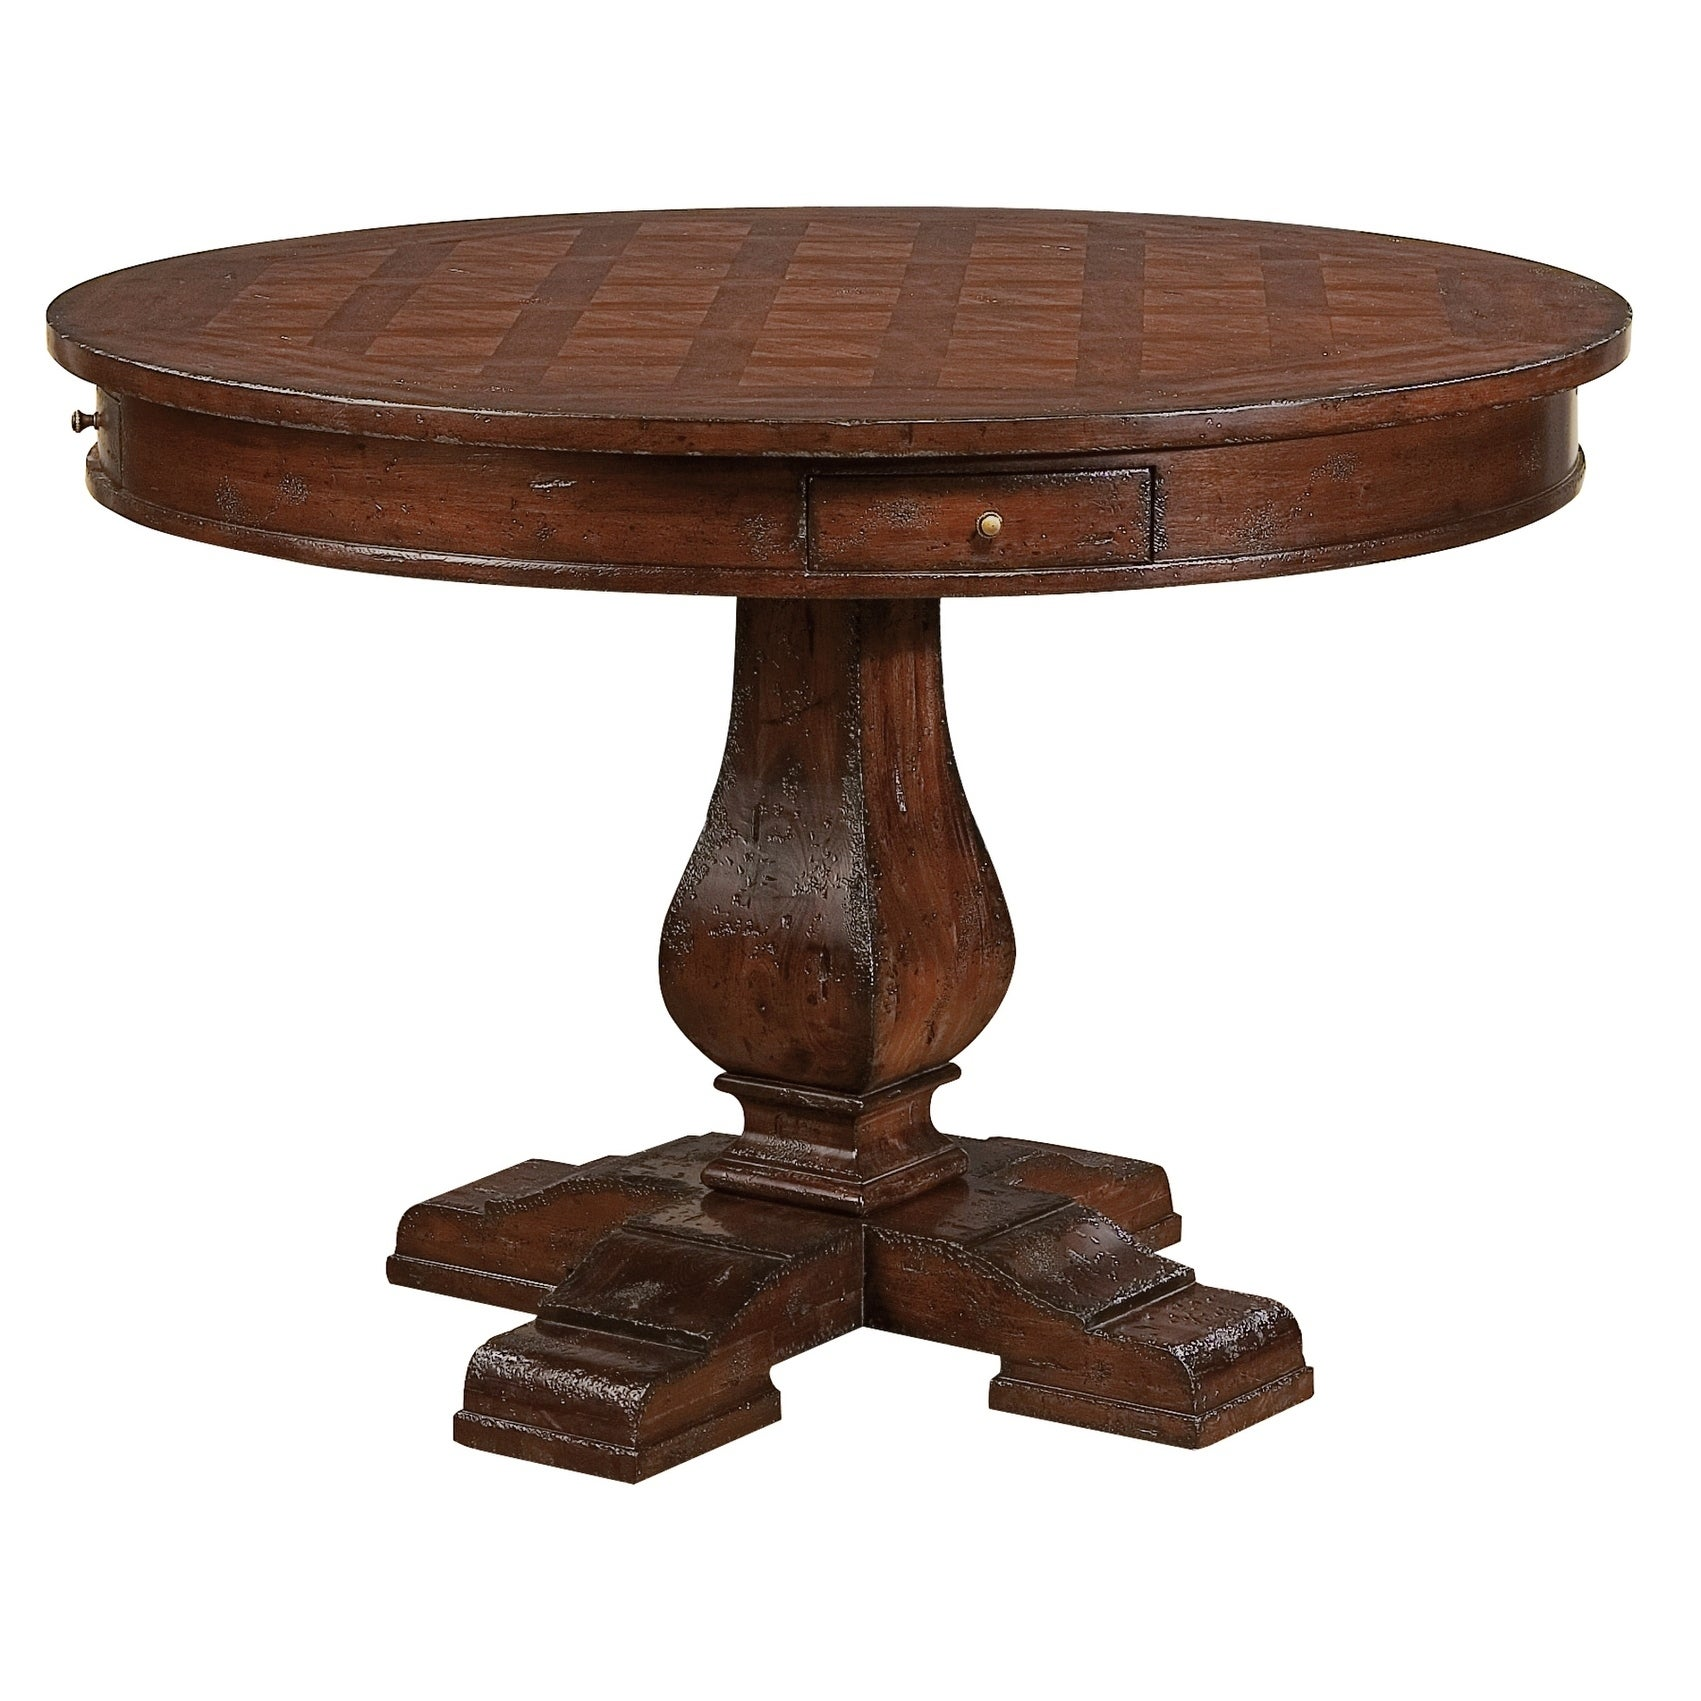 Hekman Furniture Havana Distressed Country Style Round Kitchen Dining Table  with Drawer